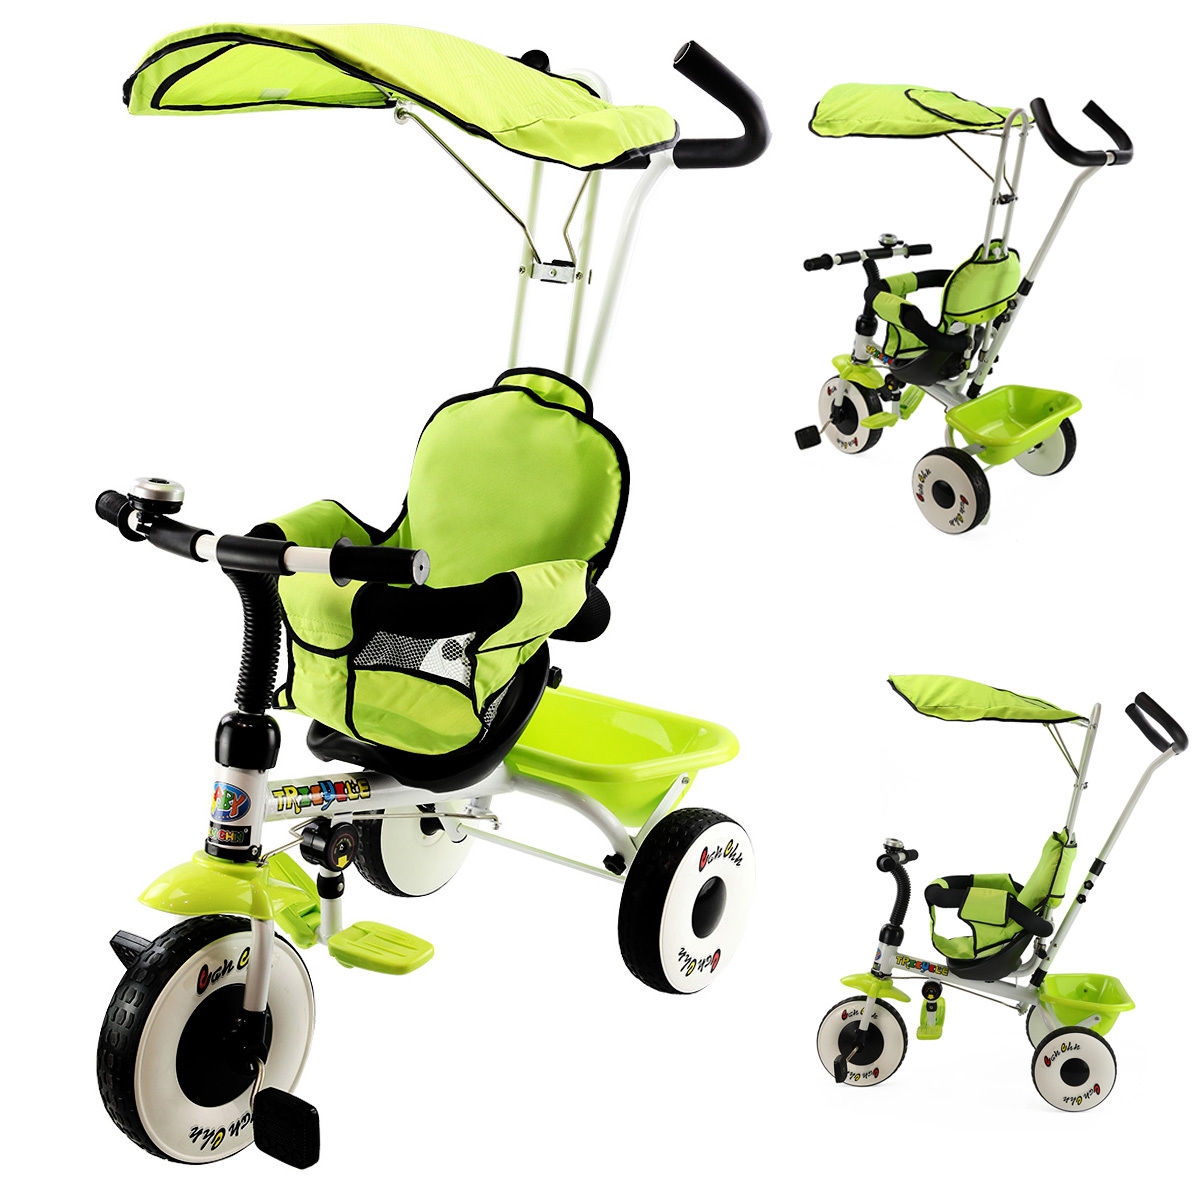 Costway 4-In-1 Kids Baby Stroller Tricycle Training Learn...